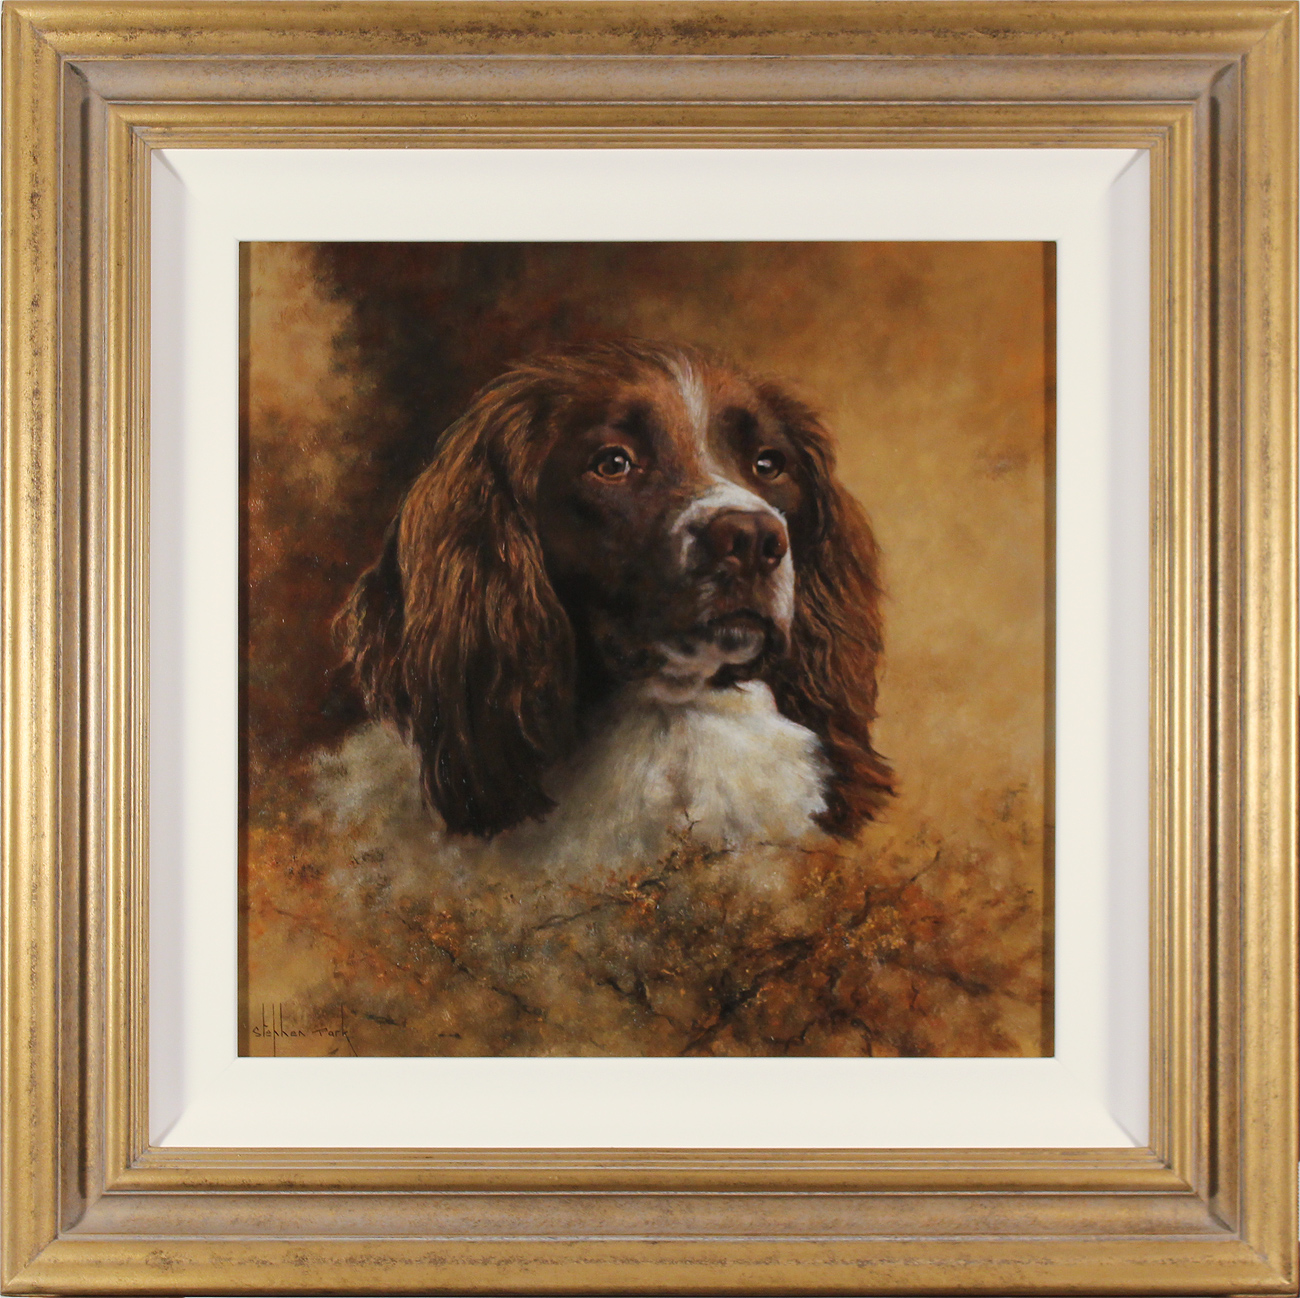 Stephen Park, Original oil painting on panel, Springer Spaniel, click to enlarge